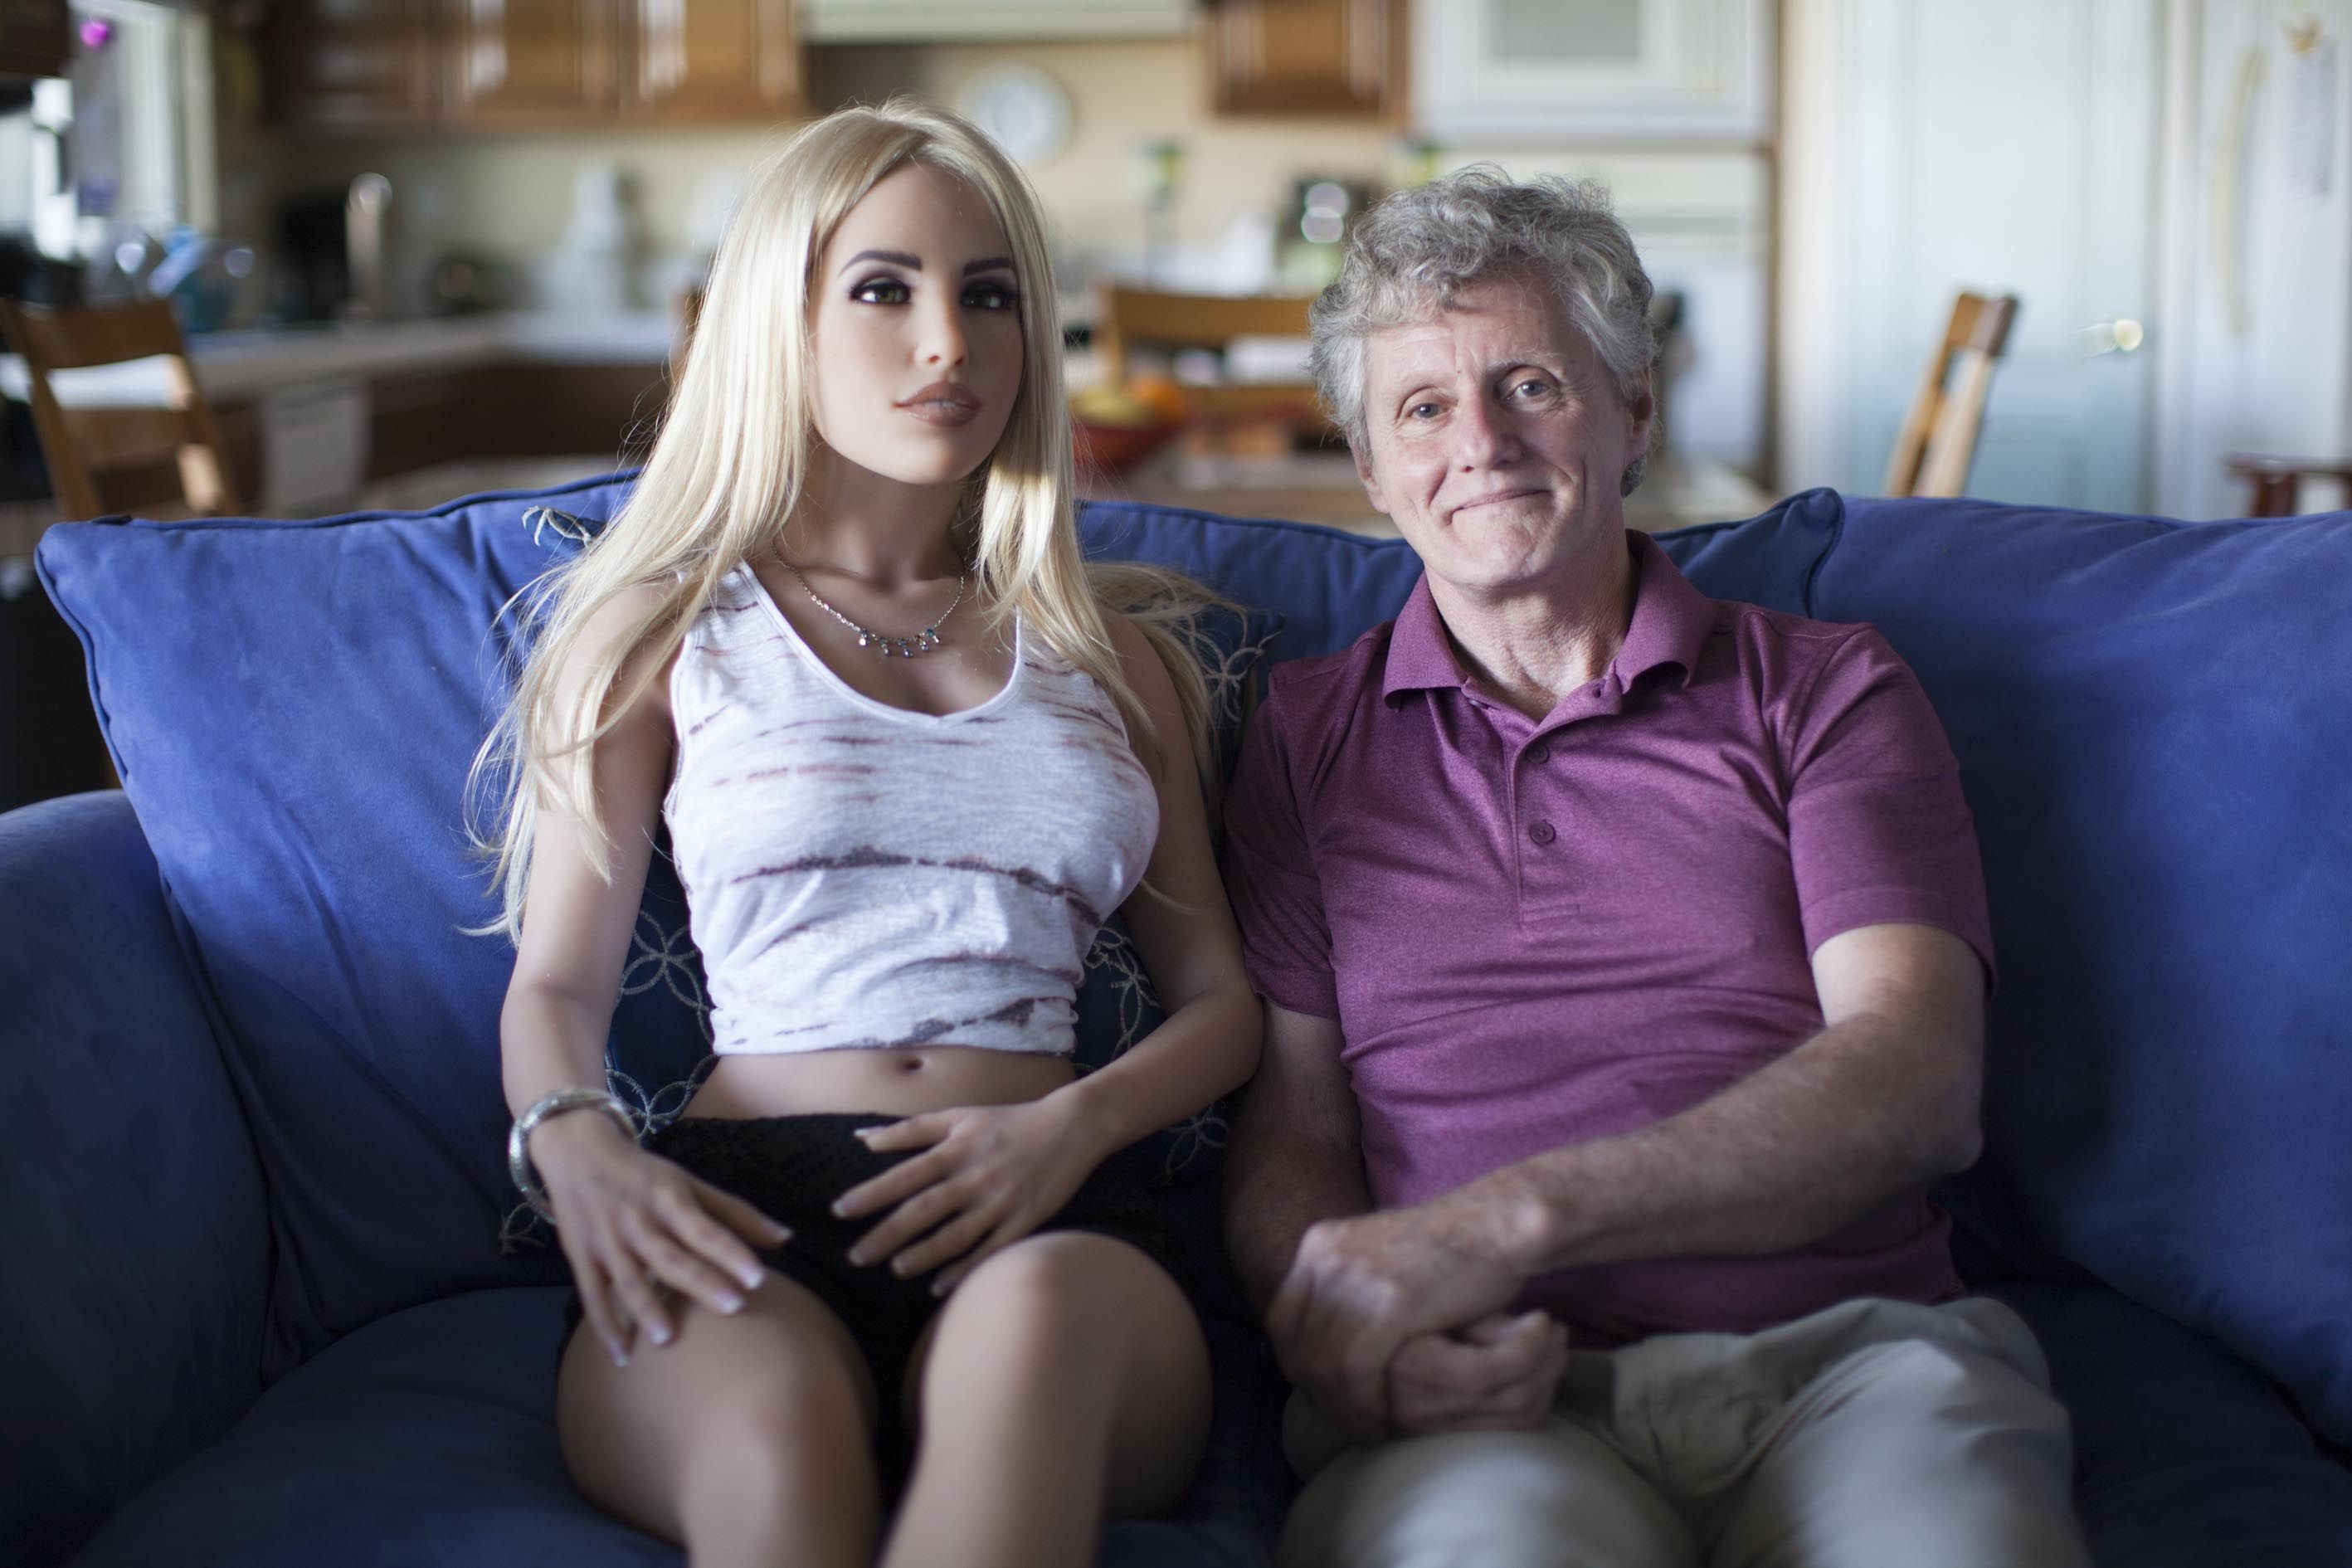 Channel 4's The Sex Robots are Coming documentary sparked a big robot v human debate